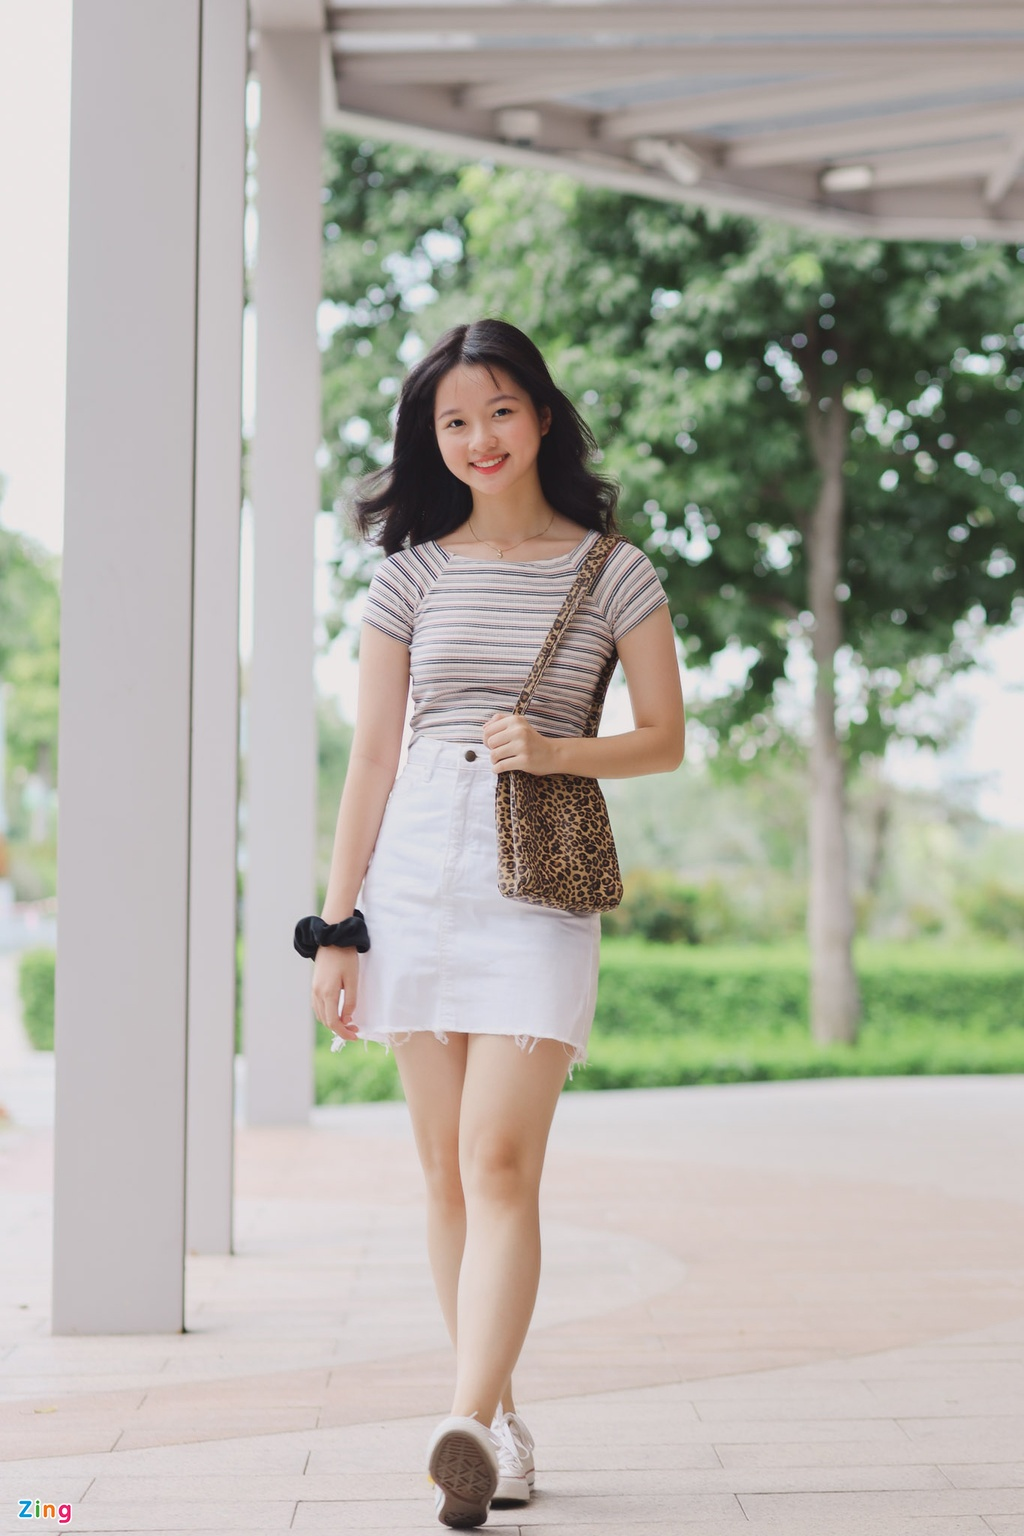 dien vien lam thanh my anh 7